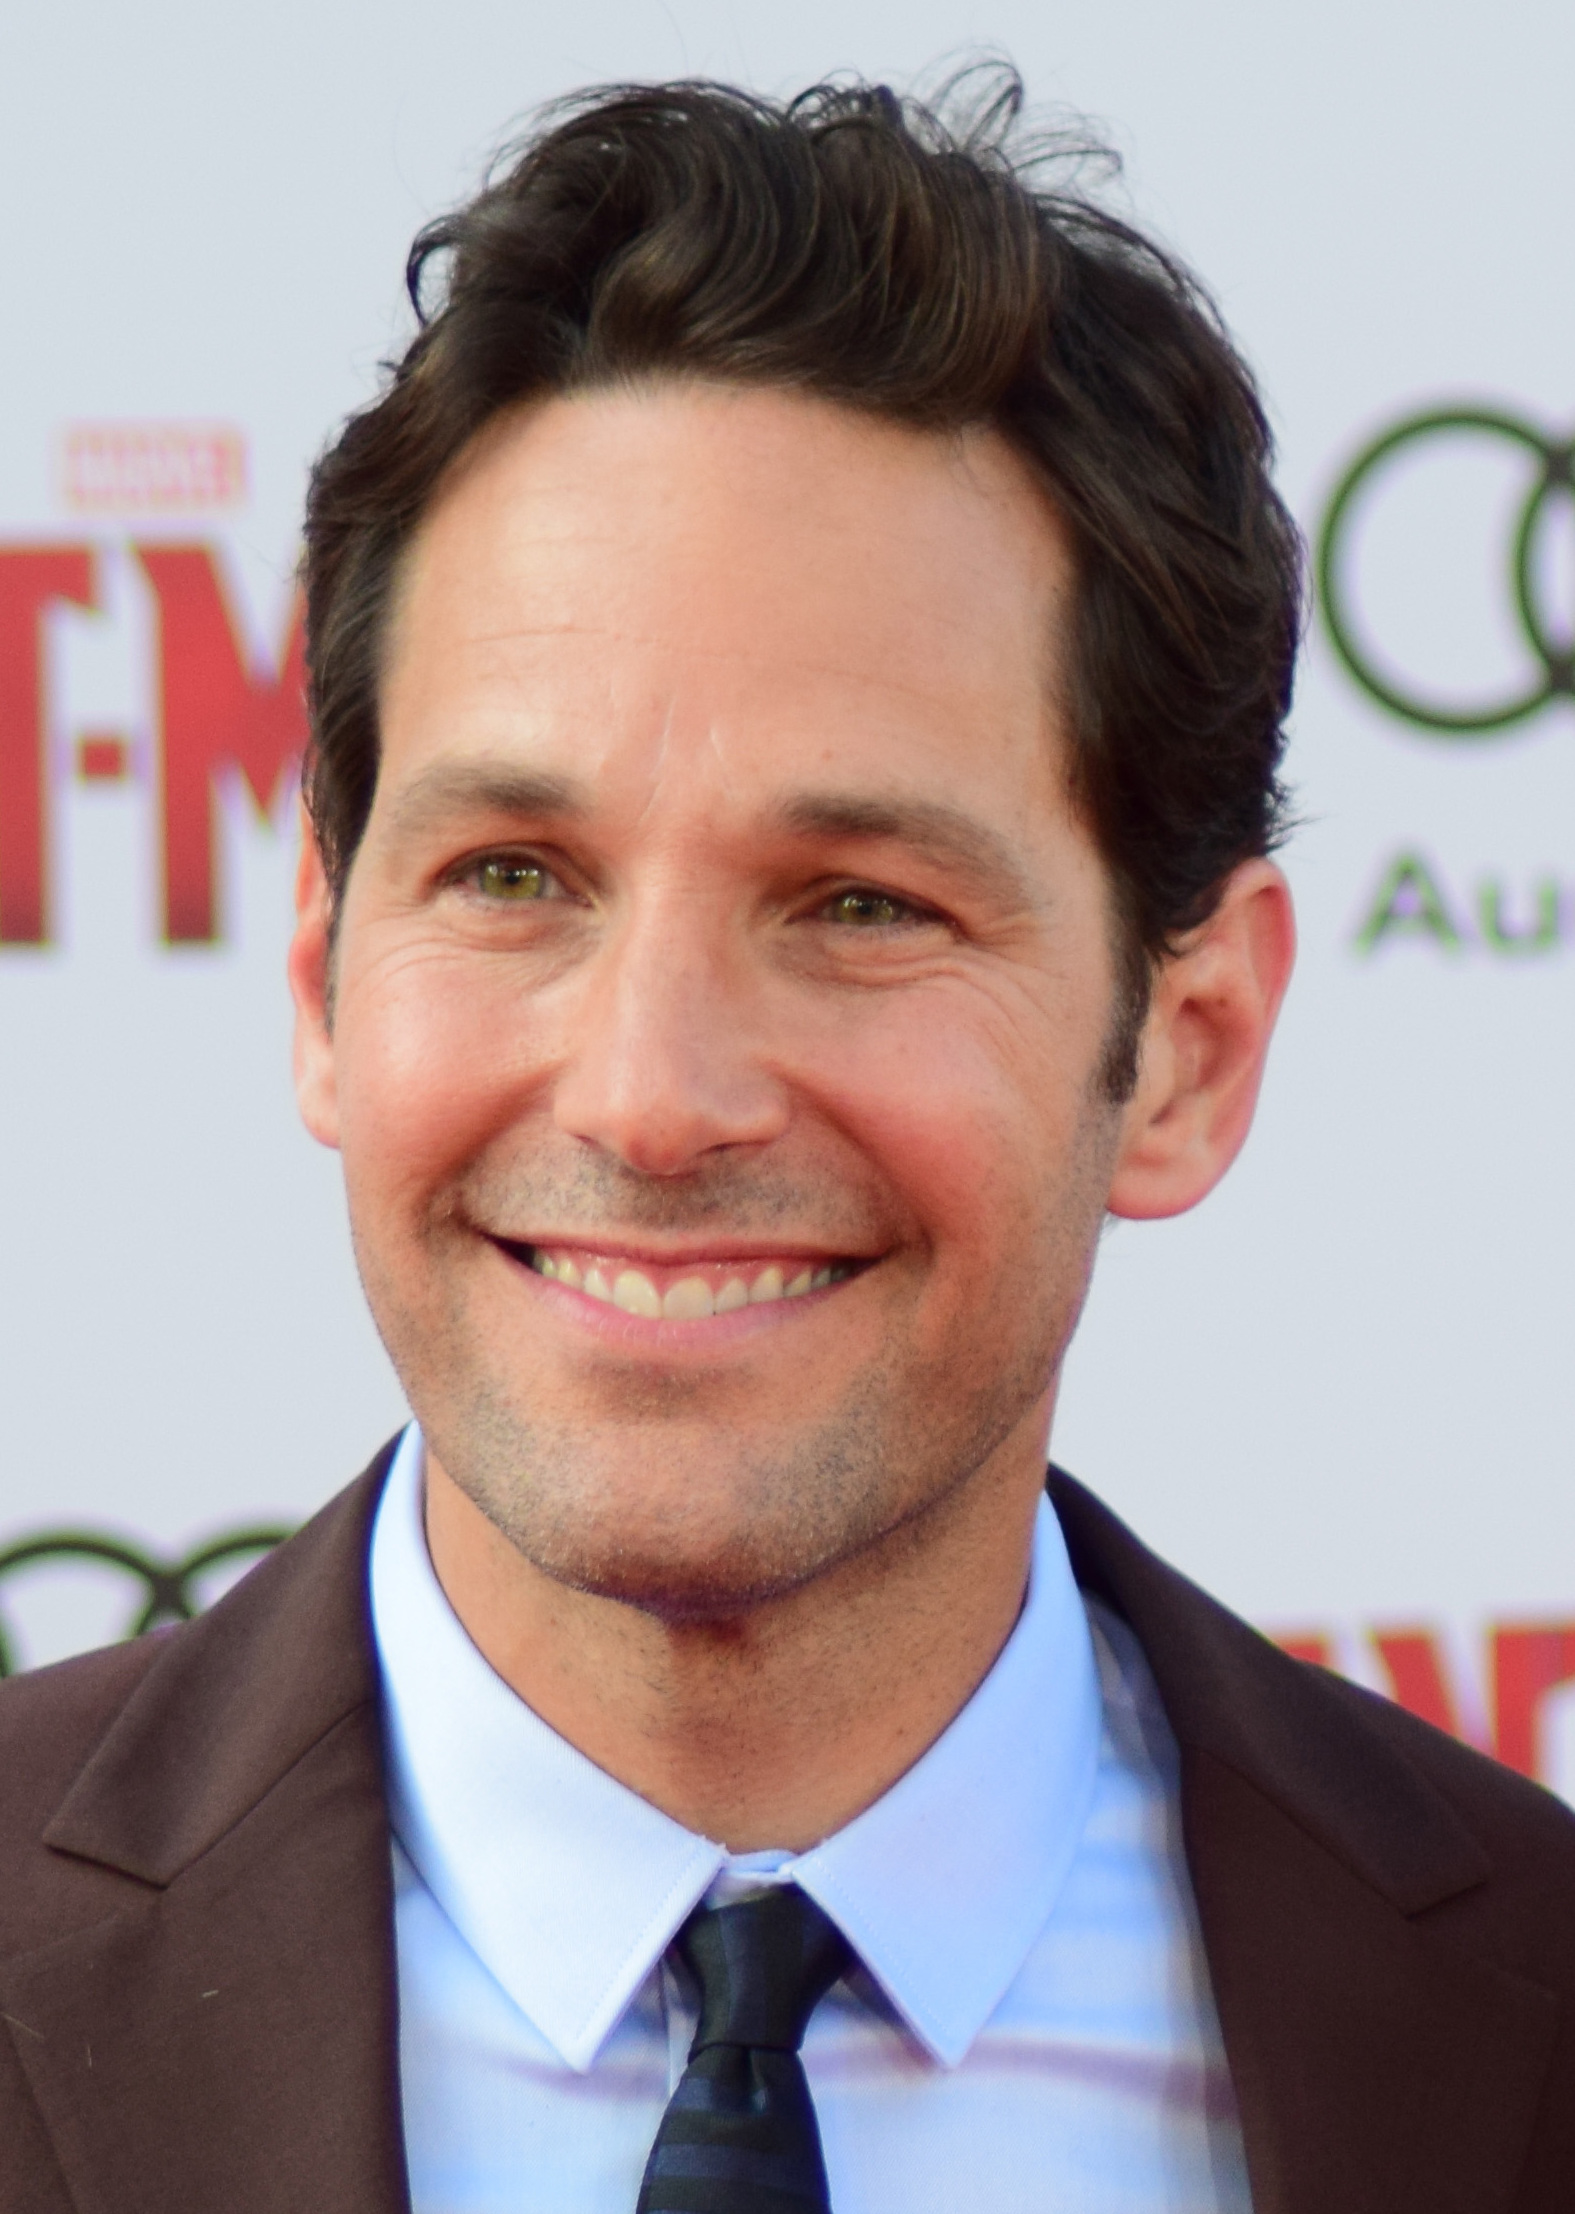 The 49-year old son of father Michael Rudd and mother Gloria Rudd Paul Rudd in 2018 photo. Paul Rudd earned a unknown million dollar salary - leaving the net worth at 25 million in 2018